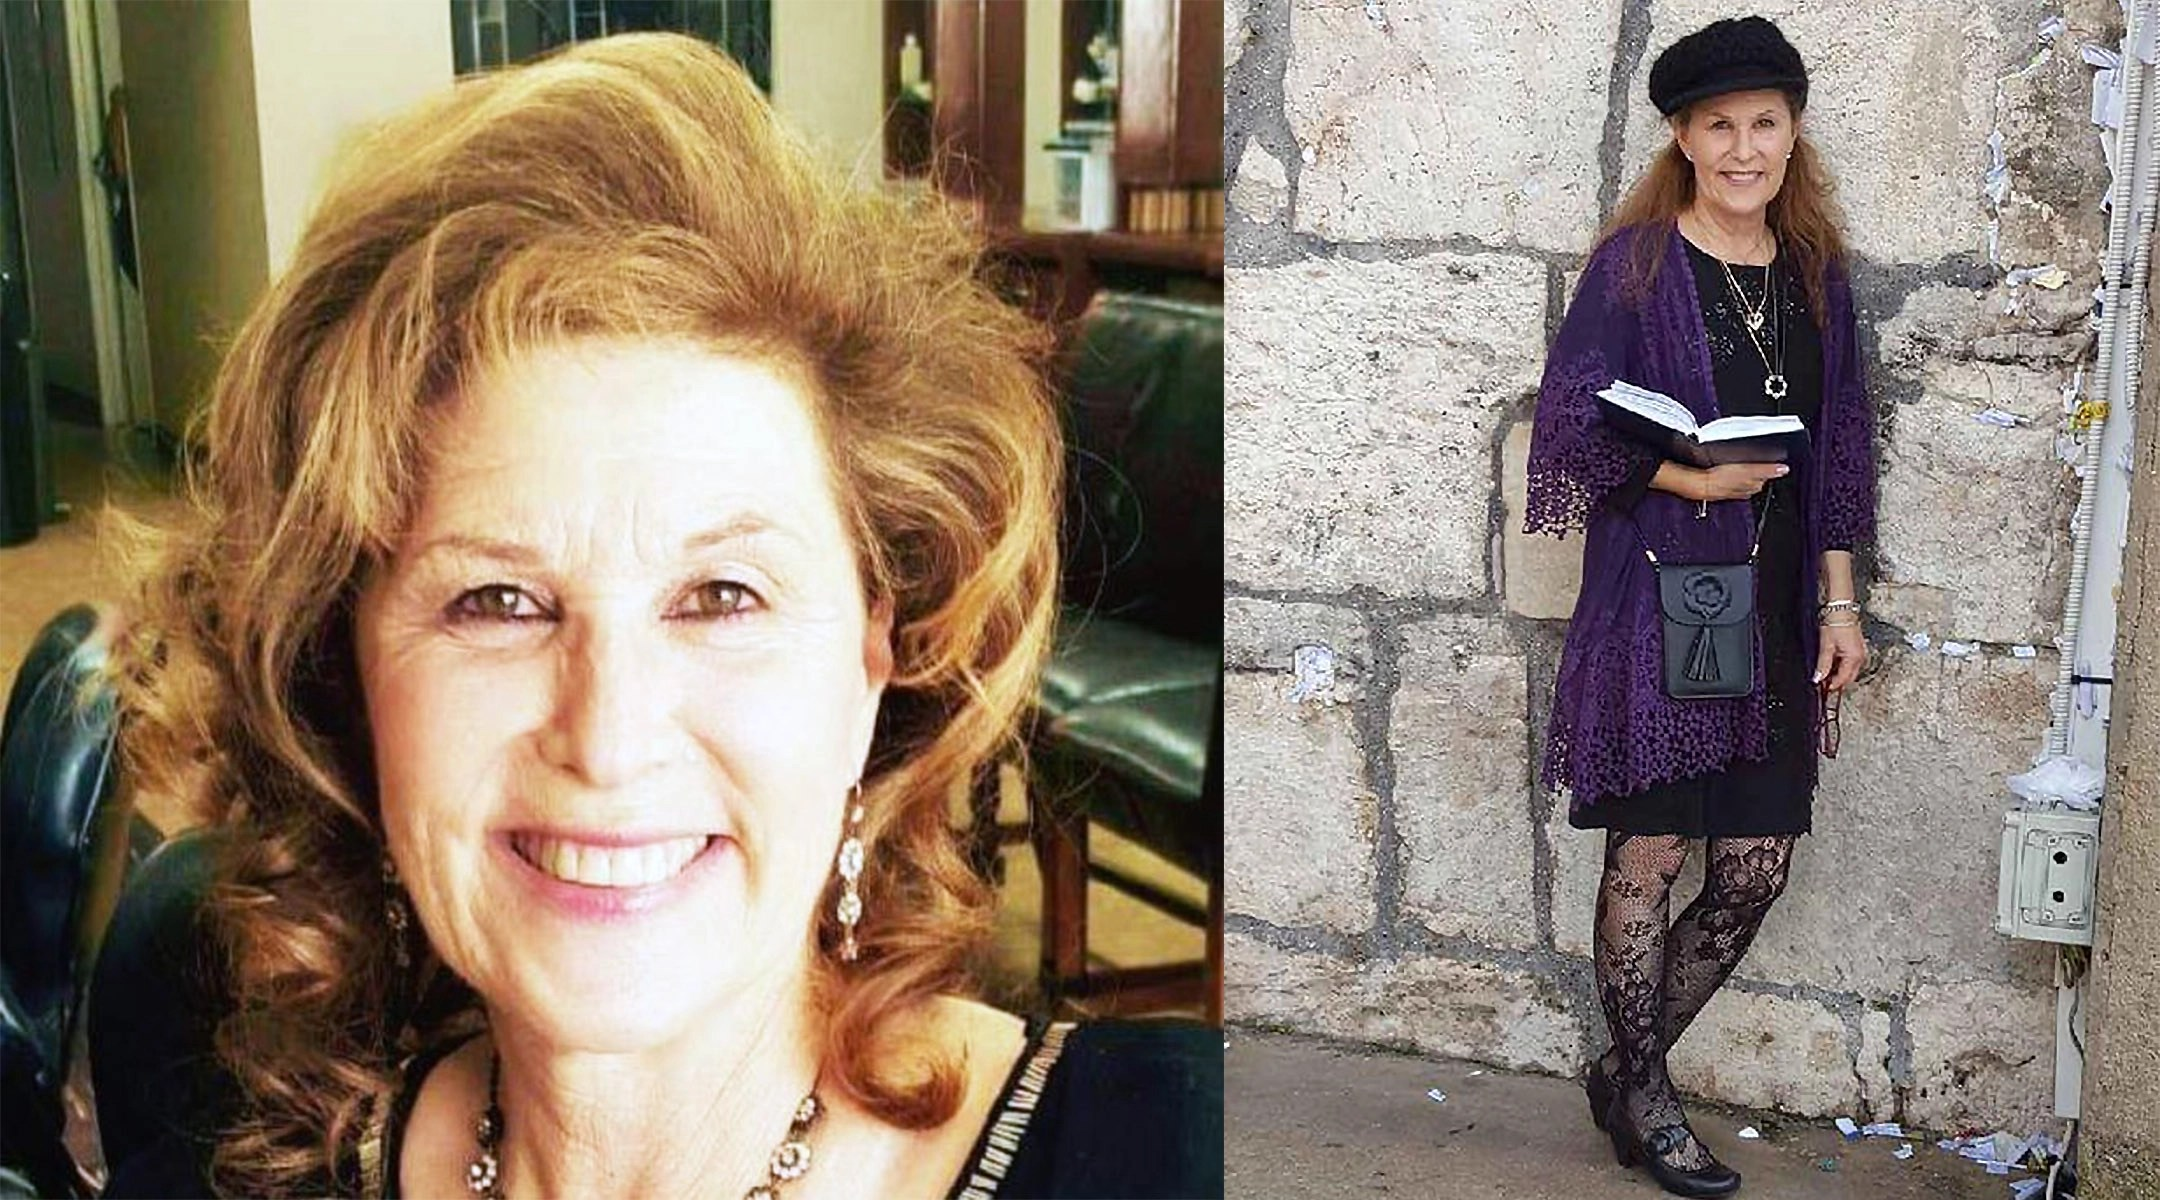 Lori Gilbert Kaye 60 Killed In Poway Attack Said To